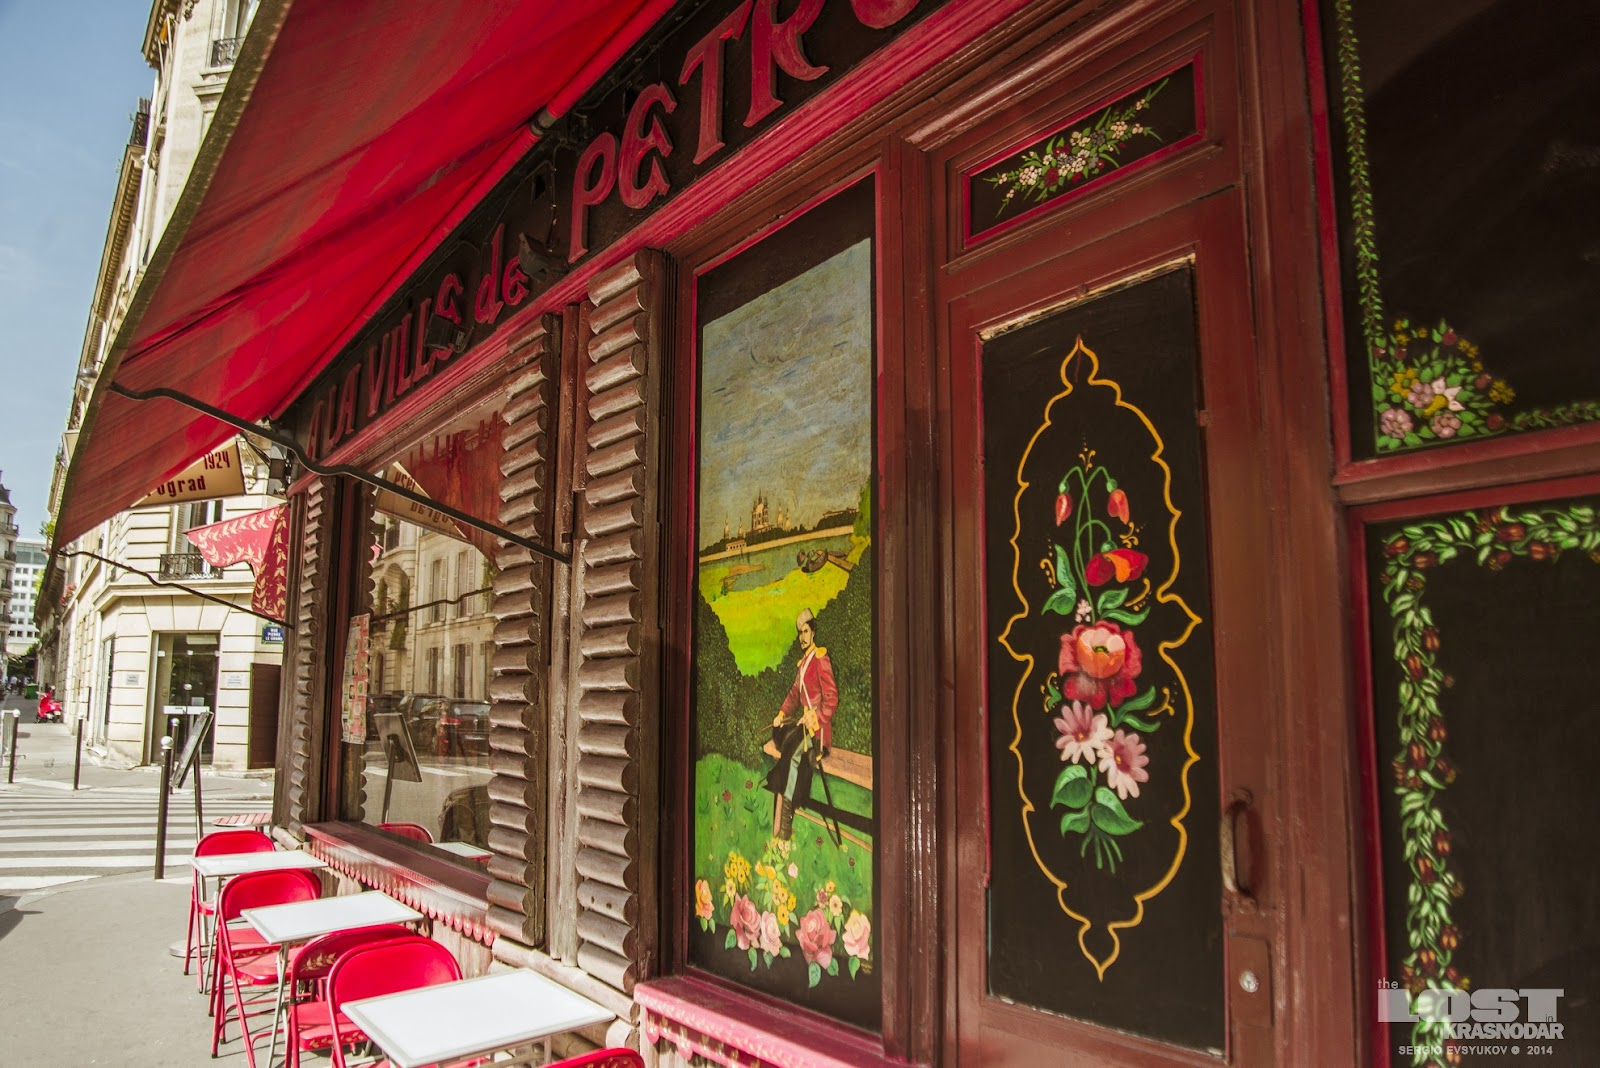 Russian restaurant in Paris